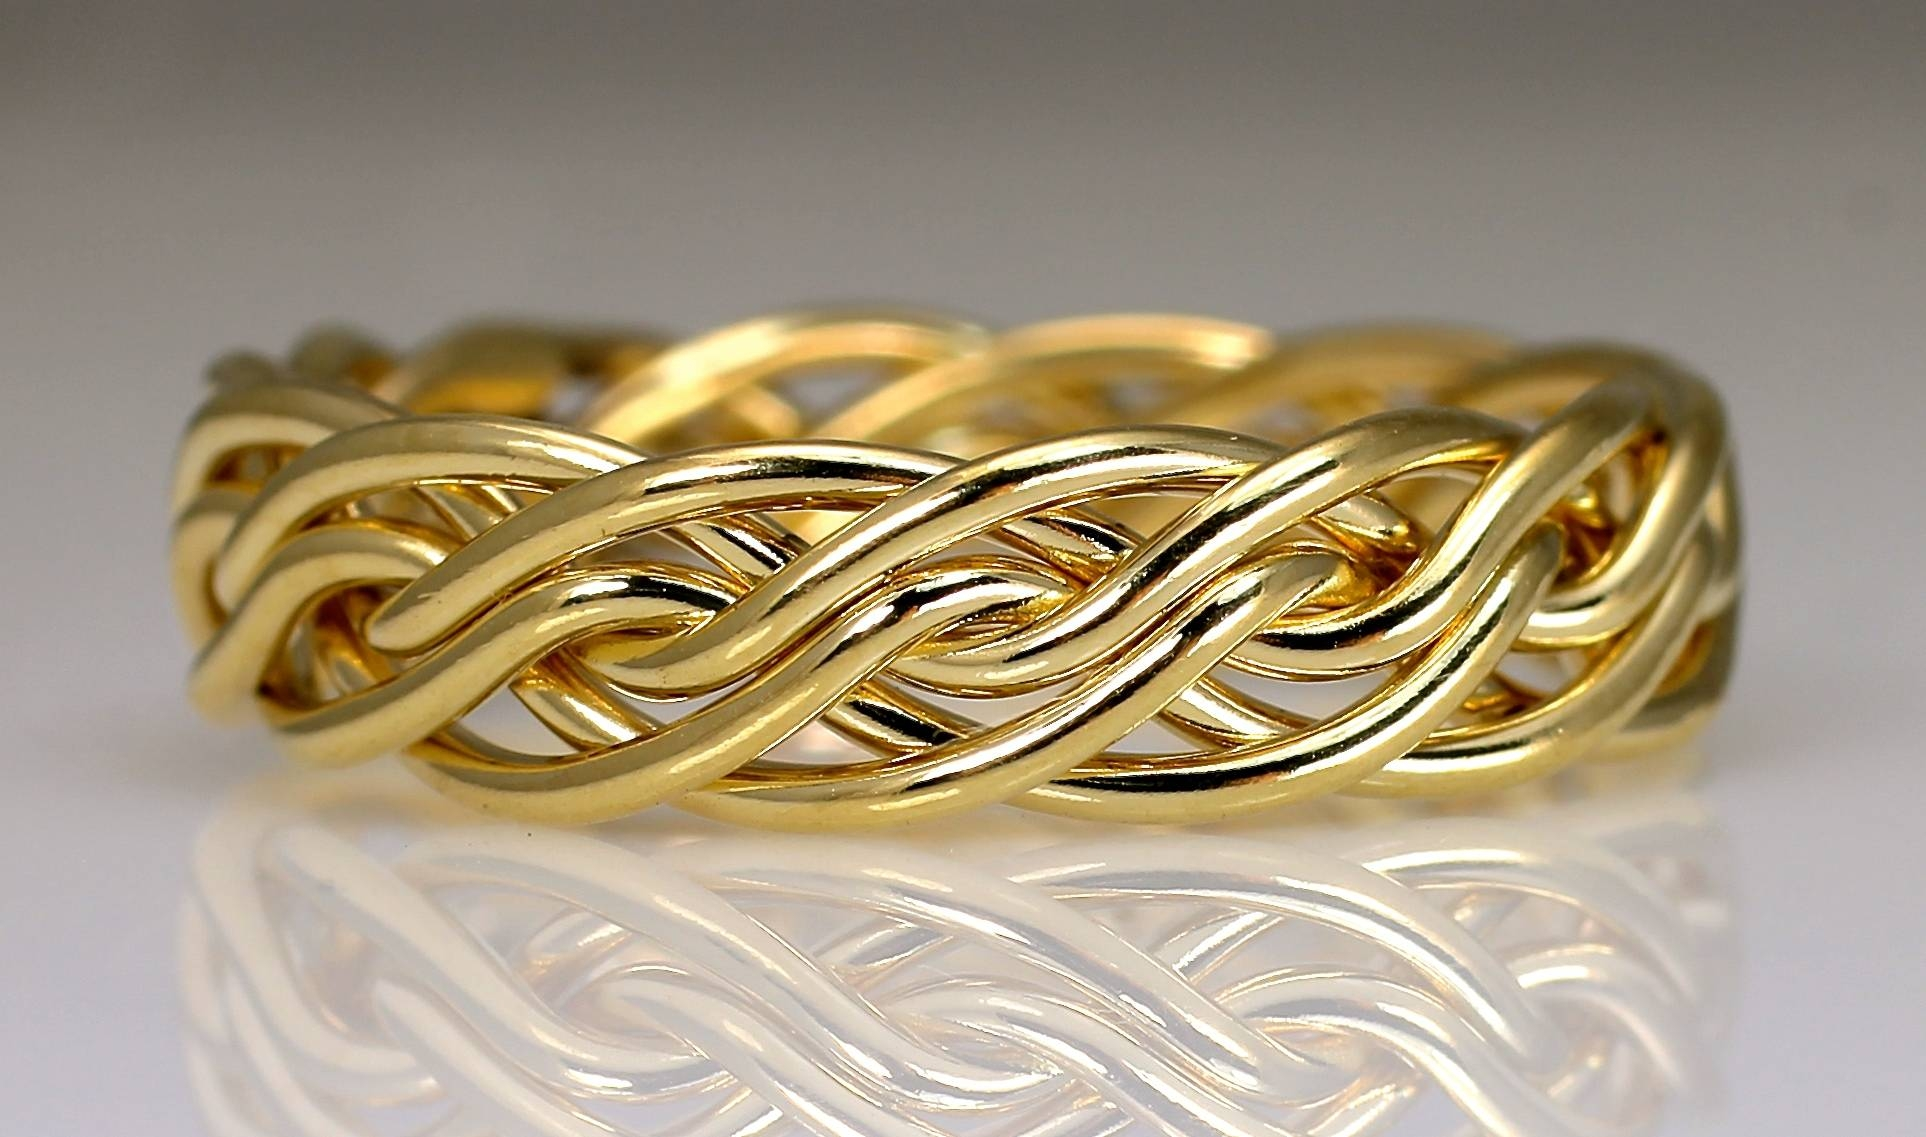 Six Strand Open Weave Braided Wedding Ringsartist Todd Alan Intended For Three Color Braided Wedding Bands (View 13 of 15)